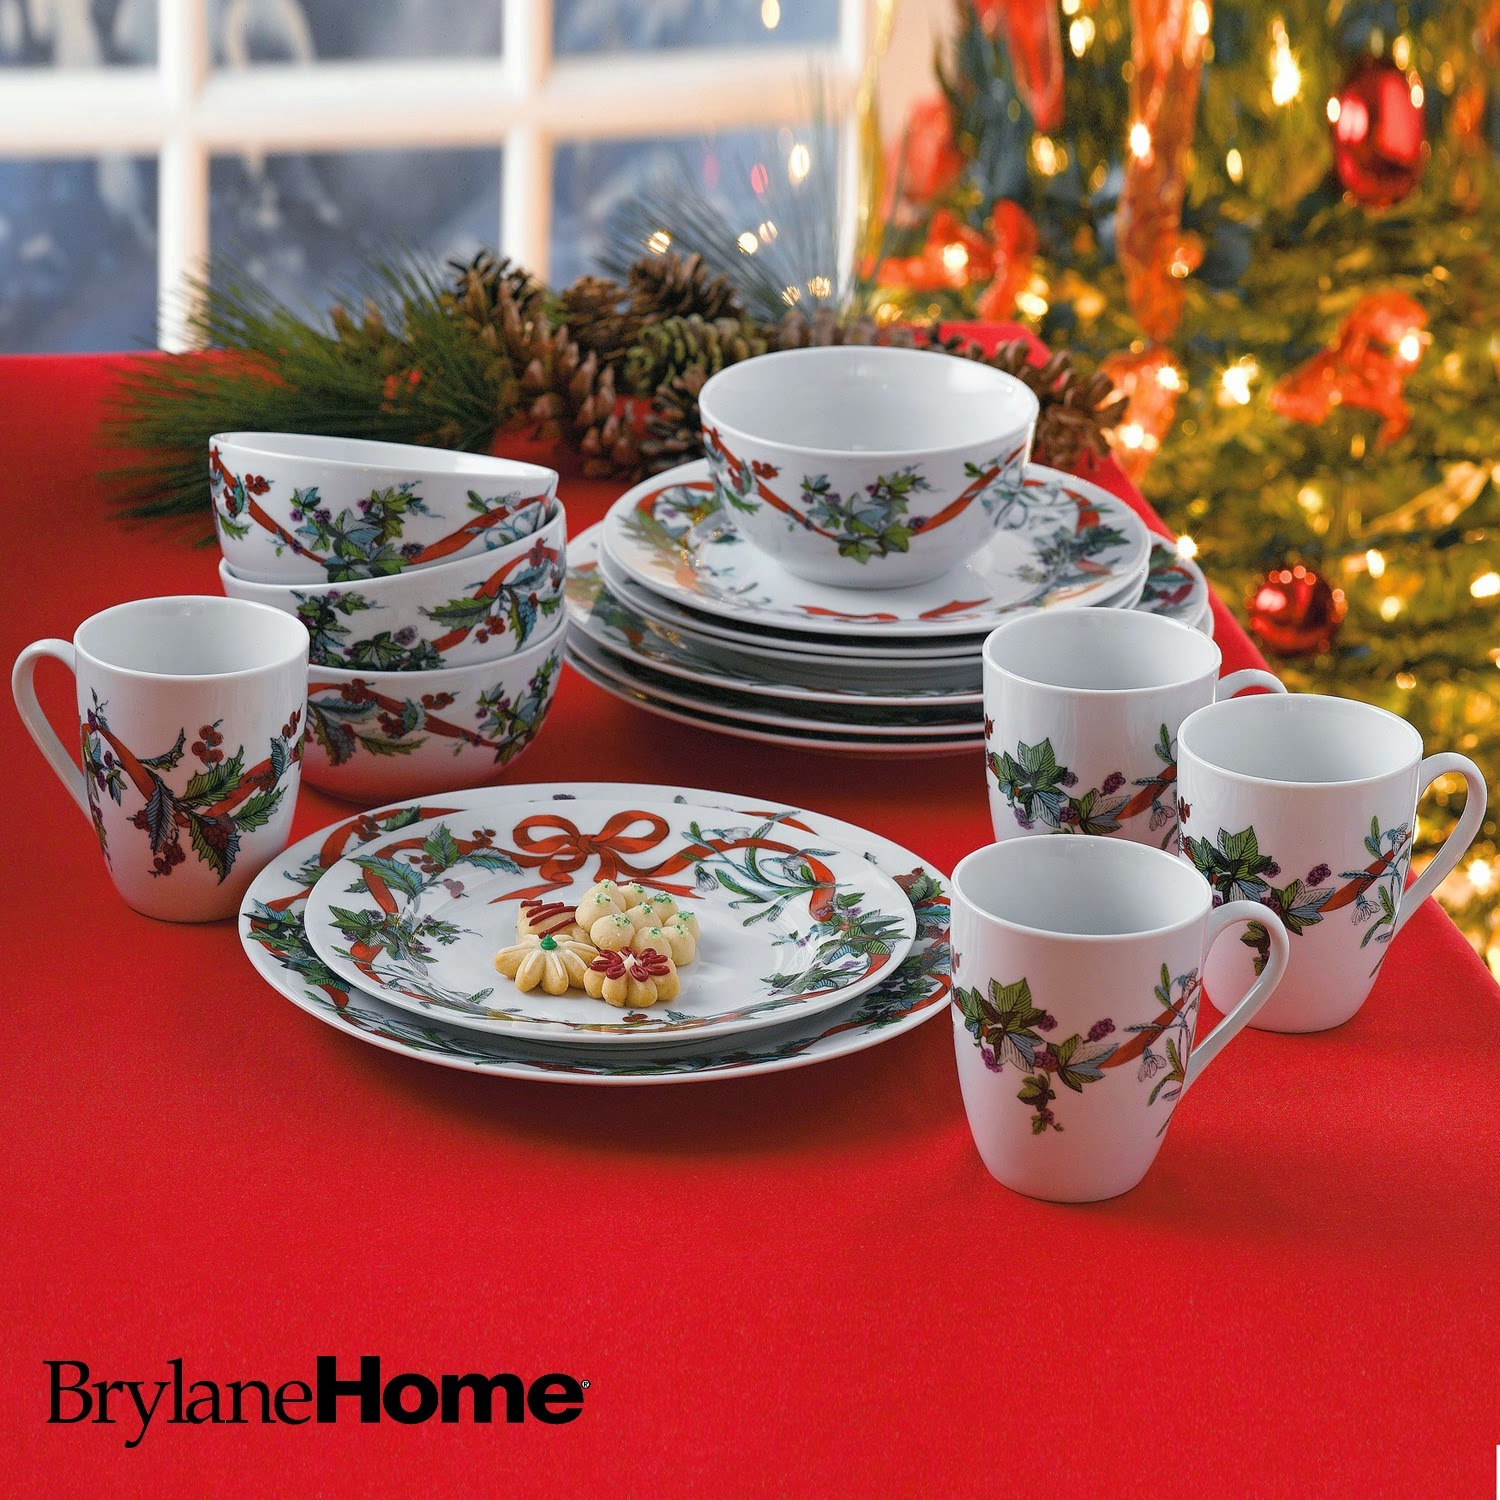 Susan 39 s disney family brylanehome is your place for for Brylane home christmas decor